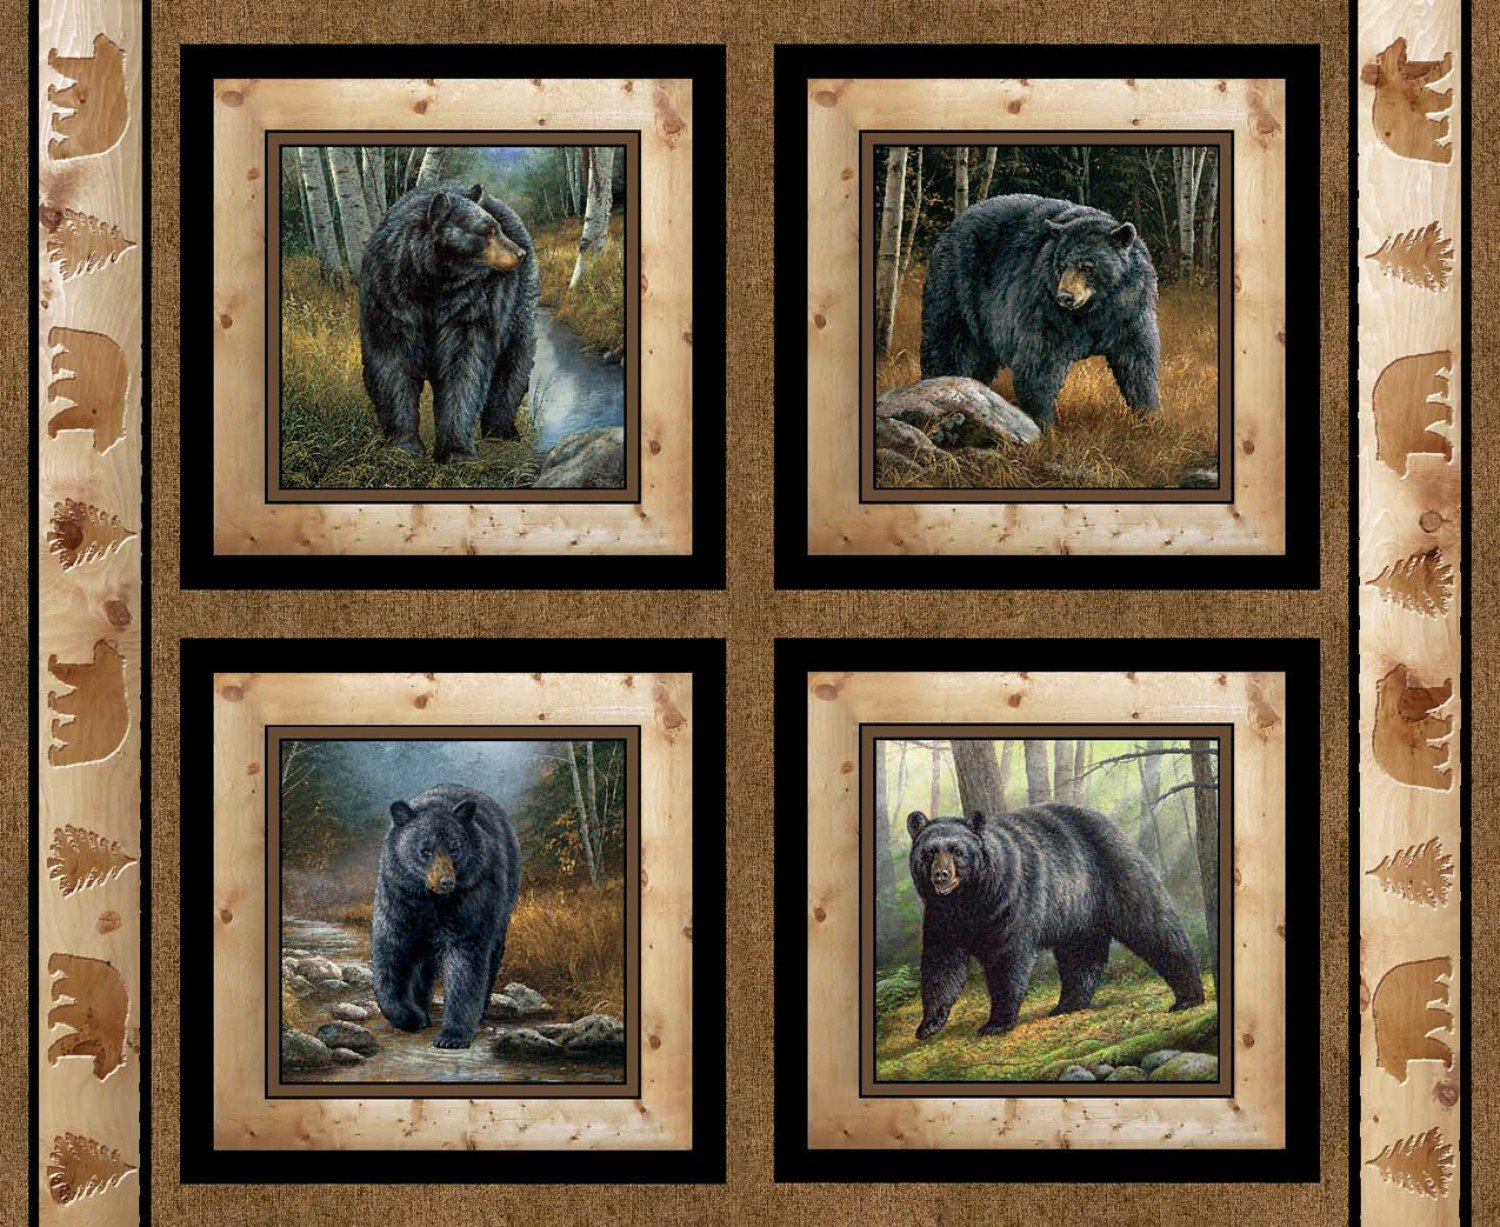 SC-Wild Wings Reluctant Companion 49470 Pillow Panel